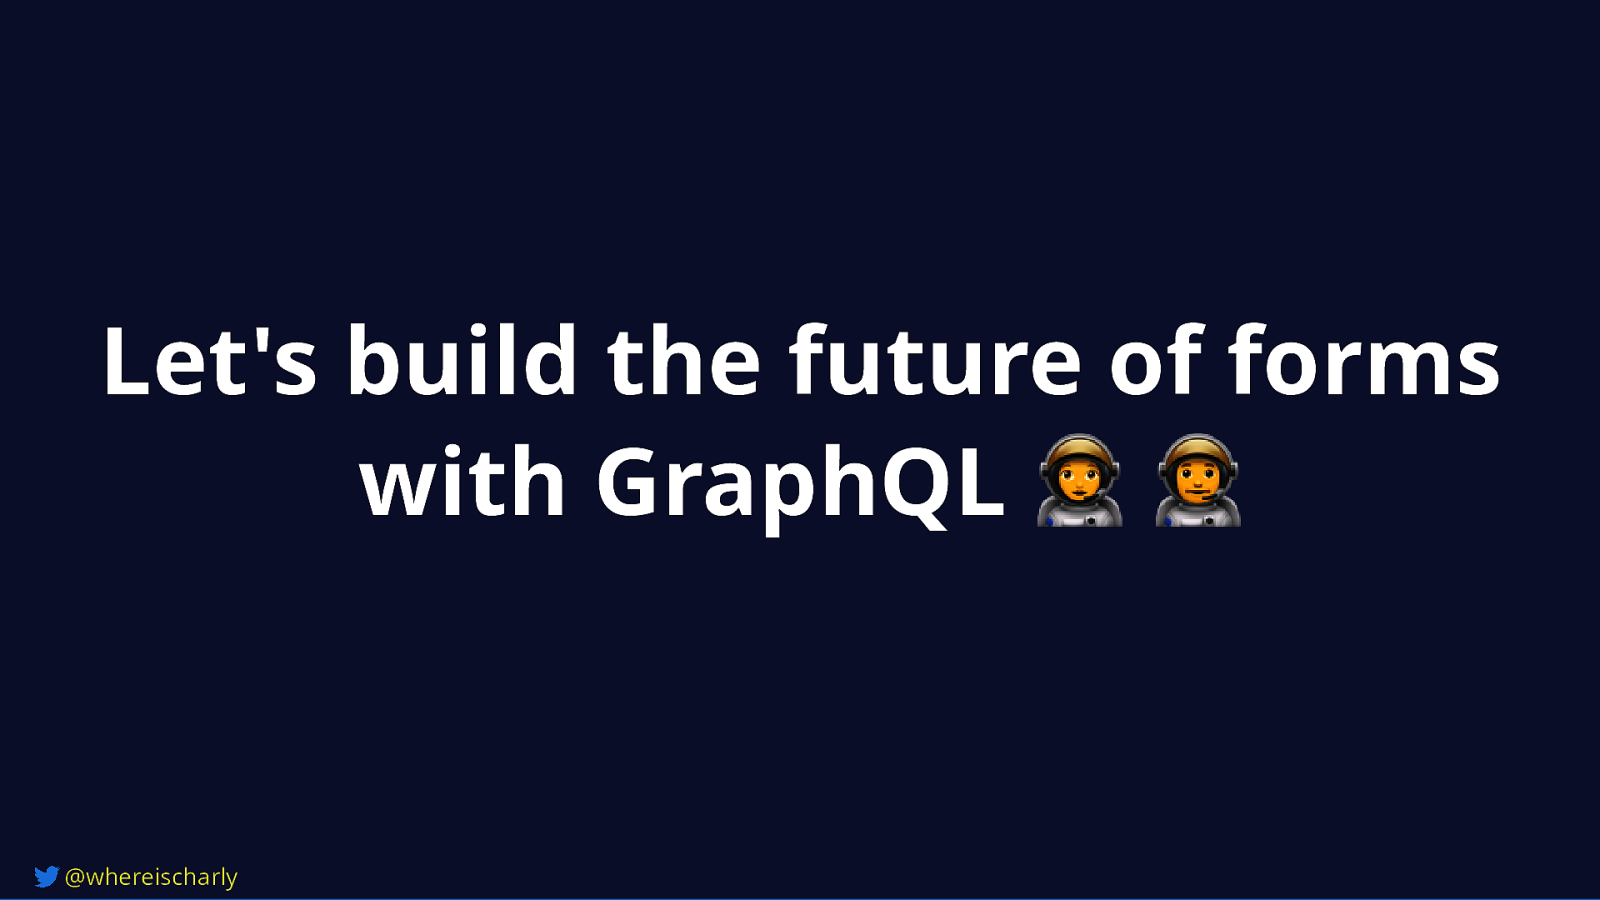 Let's build the future of forms with GraphQL